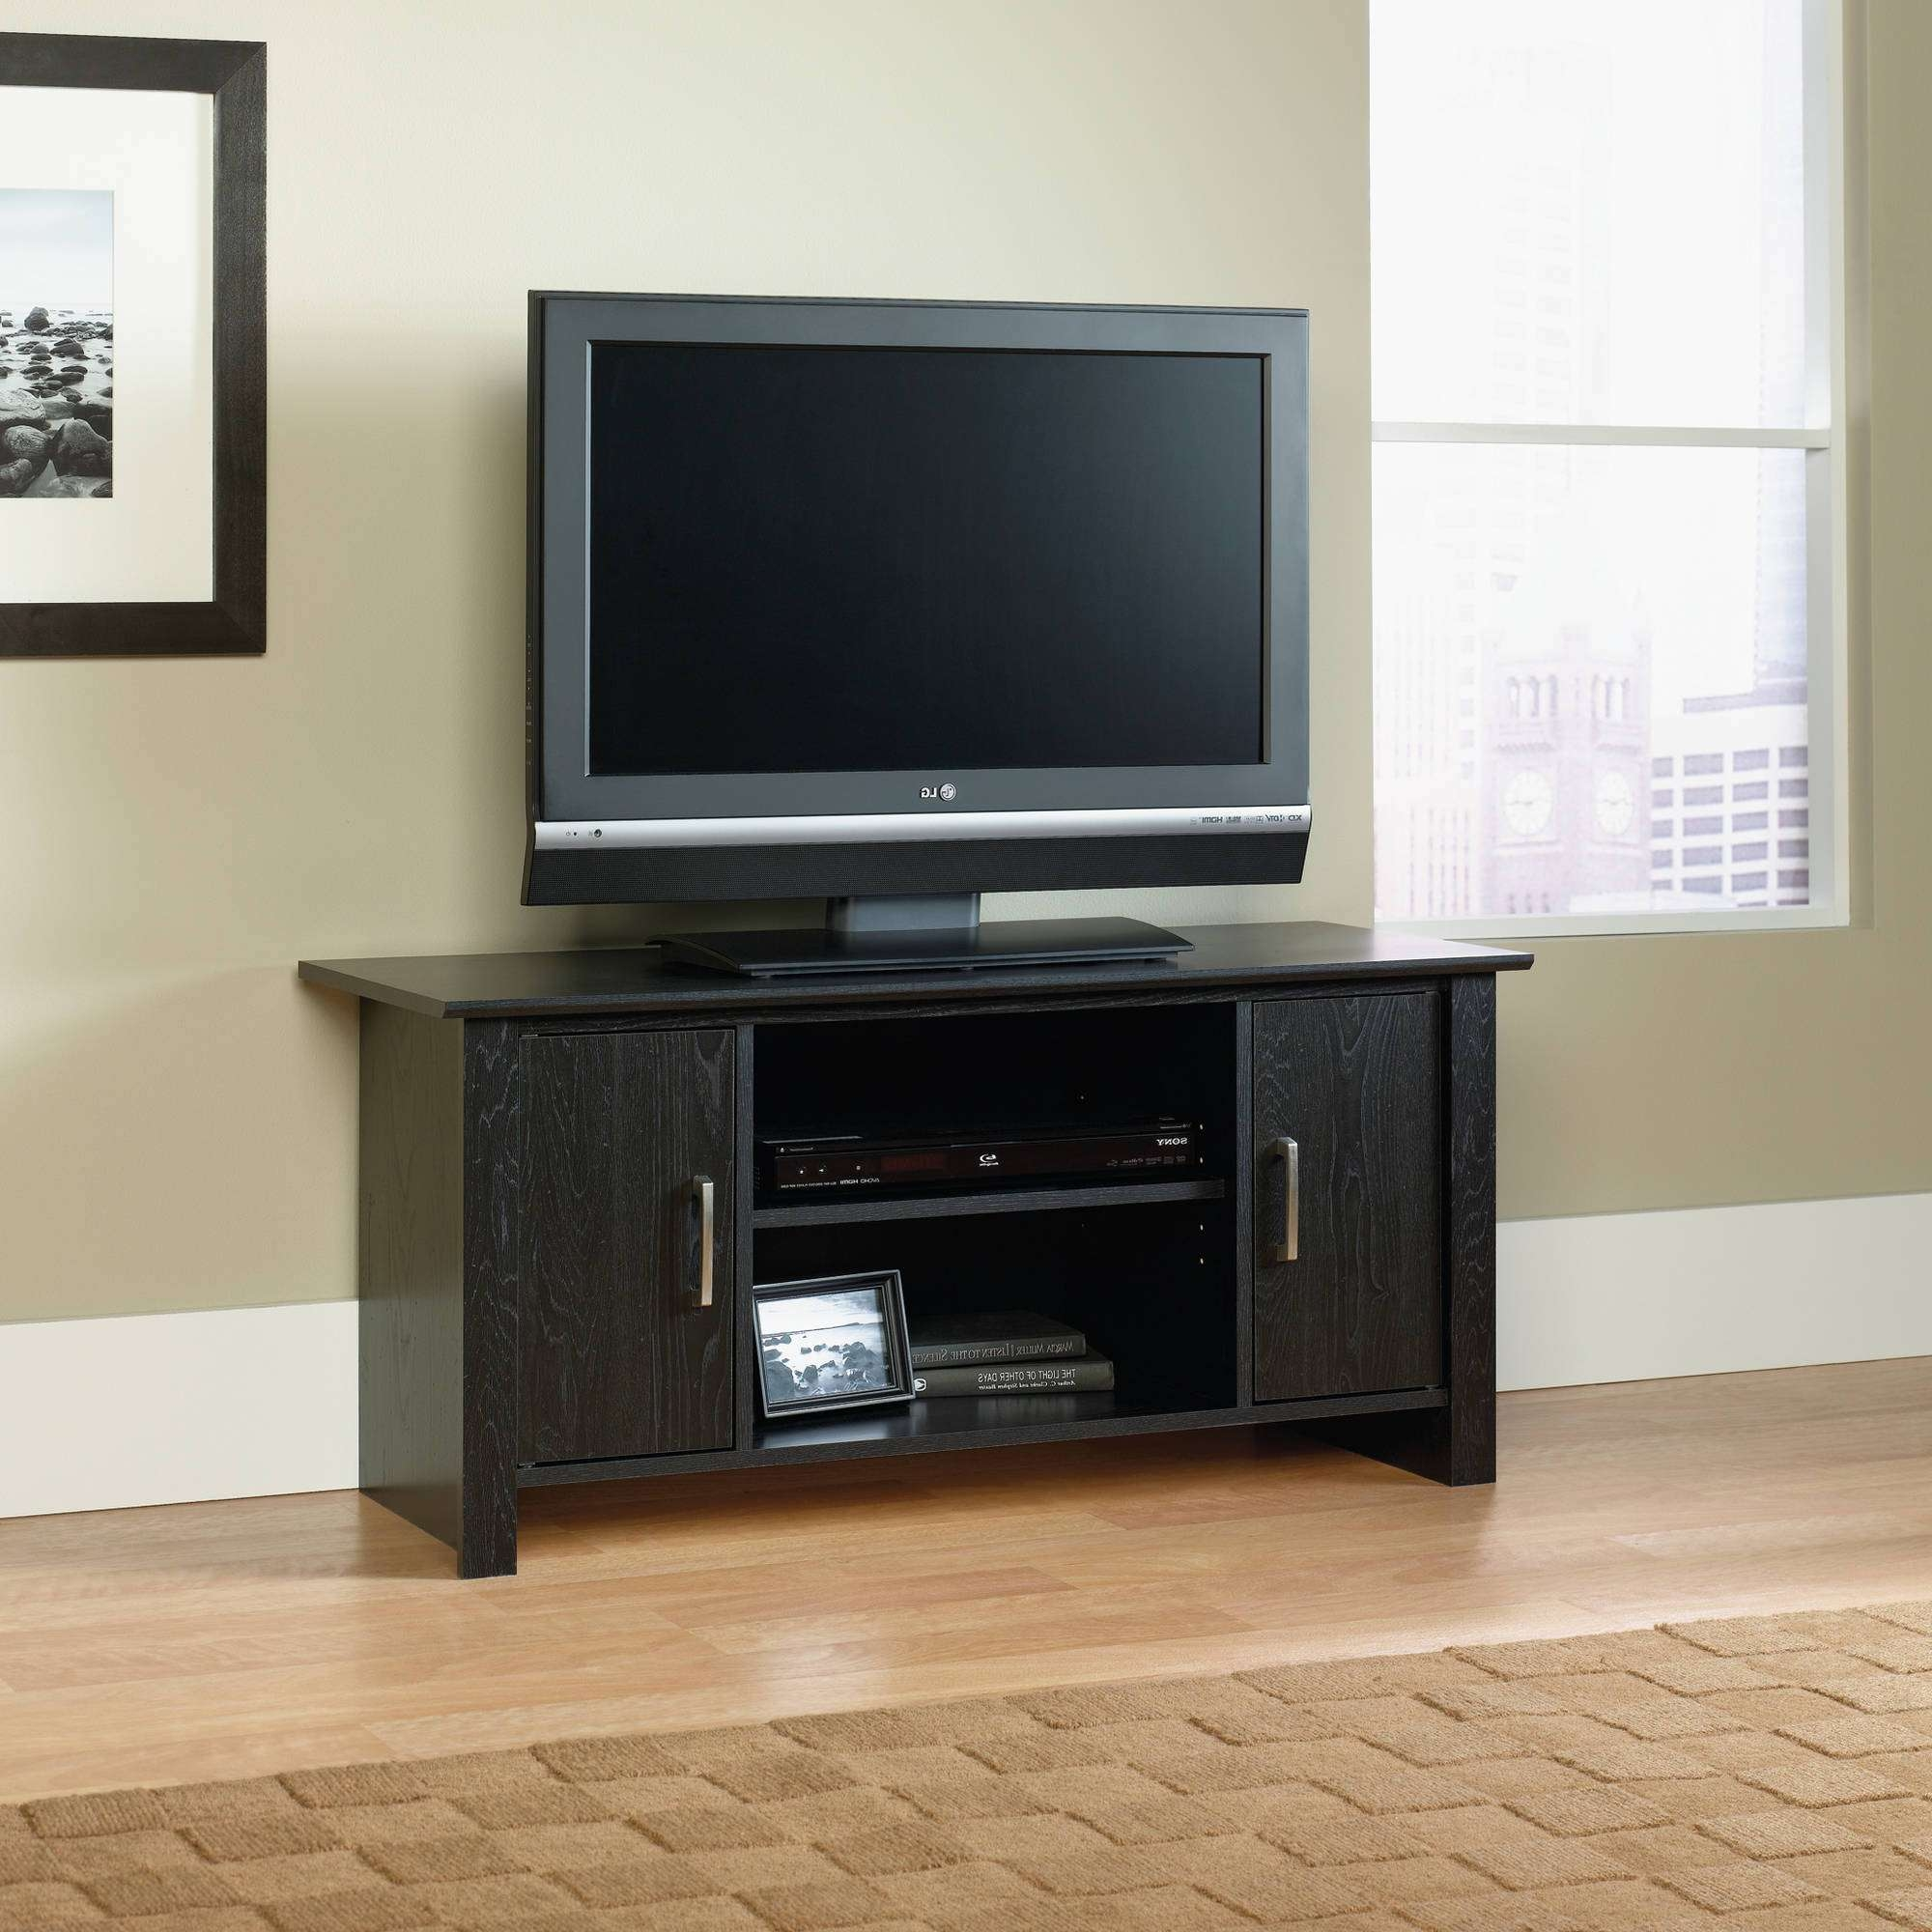 Tv Stands – Walmart For Stand And Deliver Tv Stands (View 16 of 20)